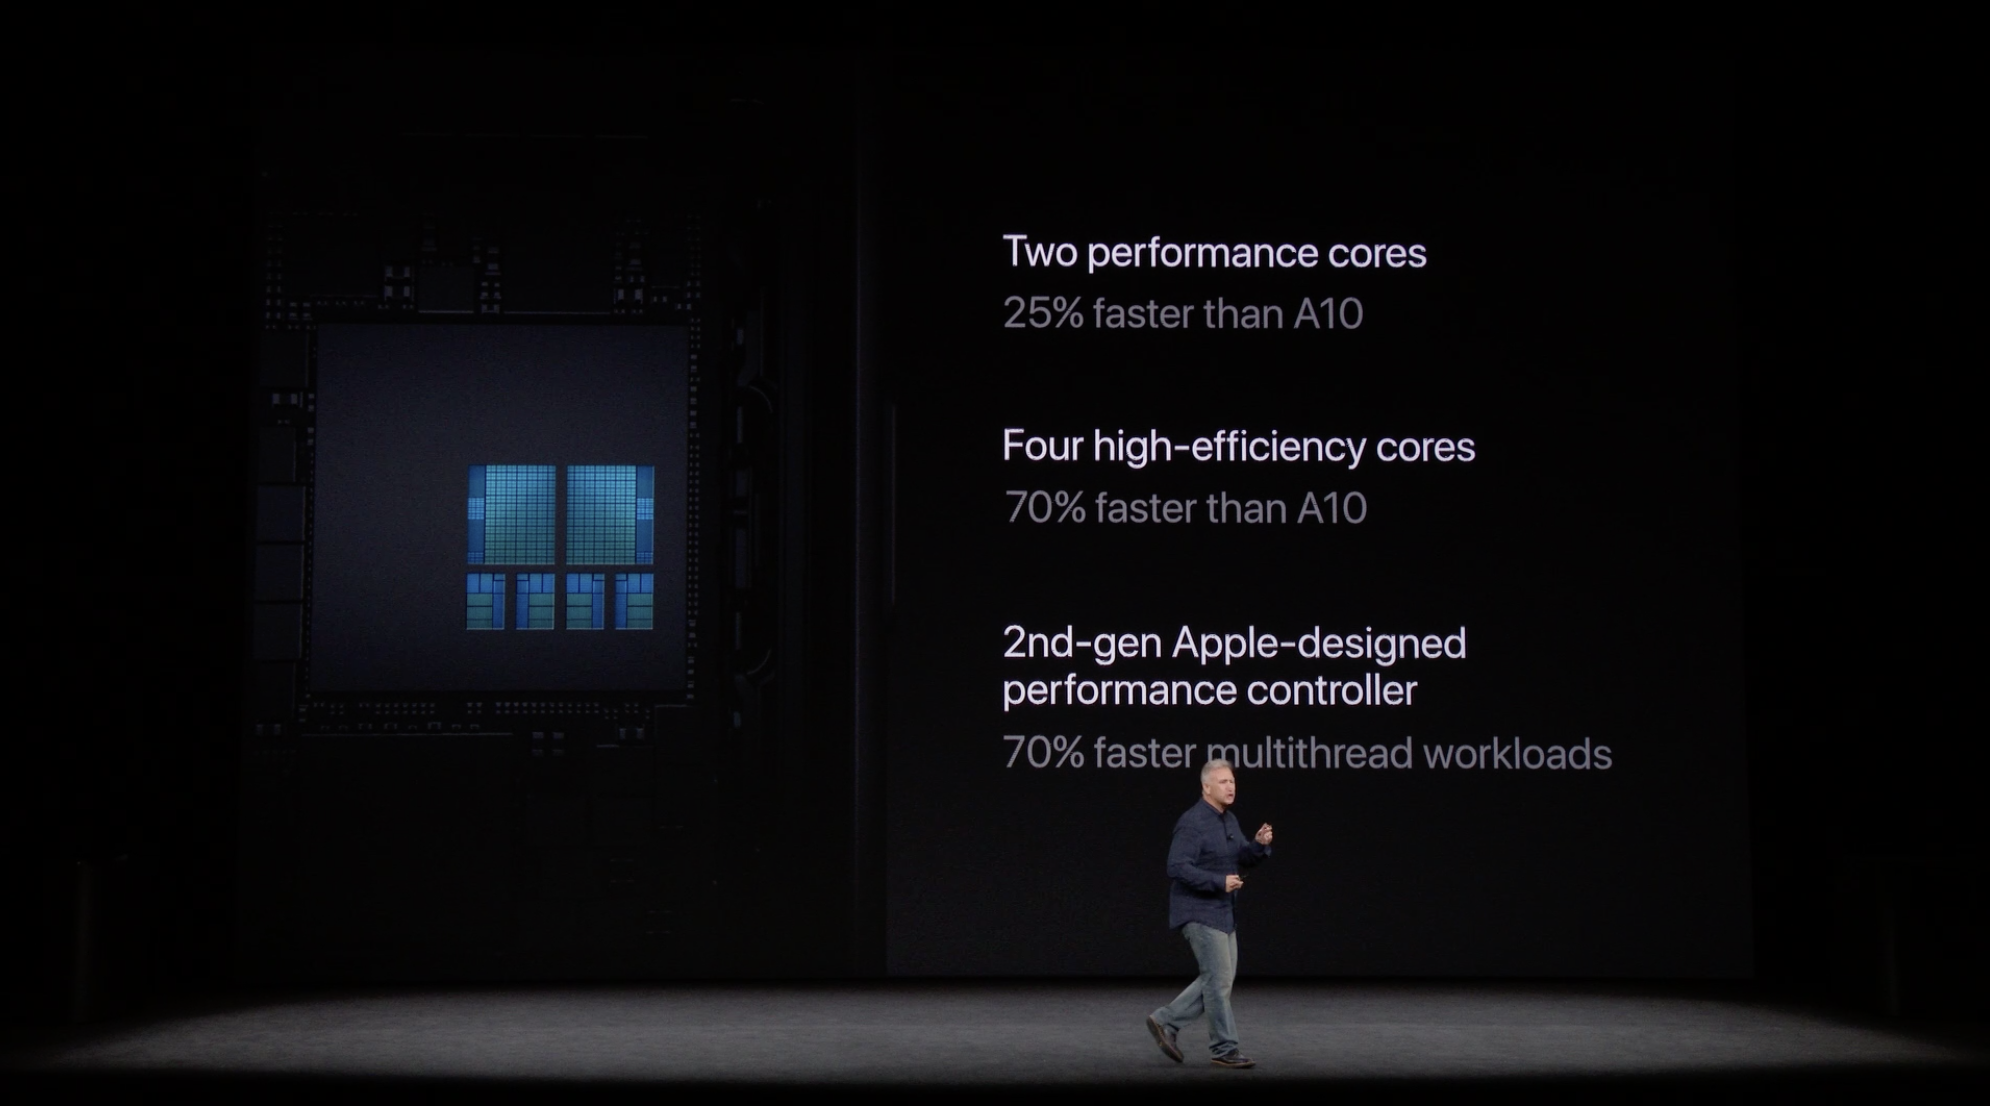 Benefits of the new A11 Bionic Chip